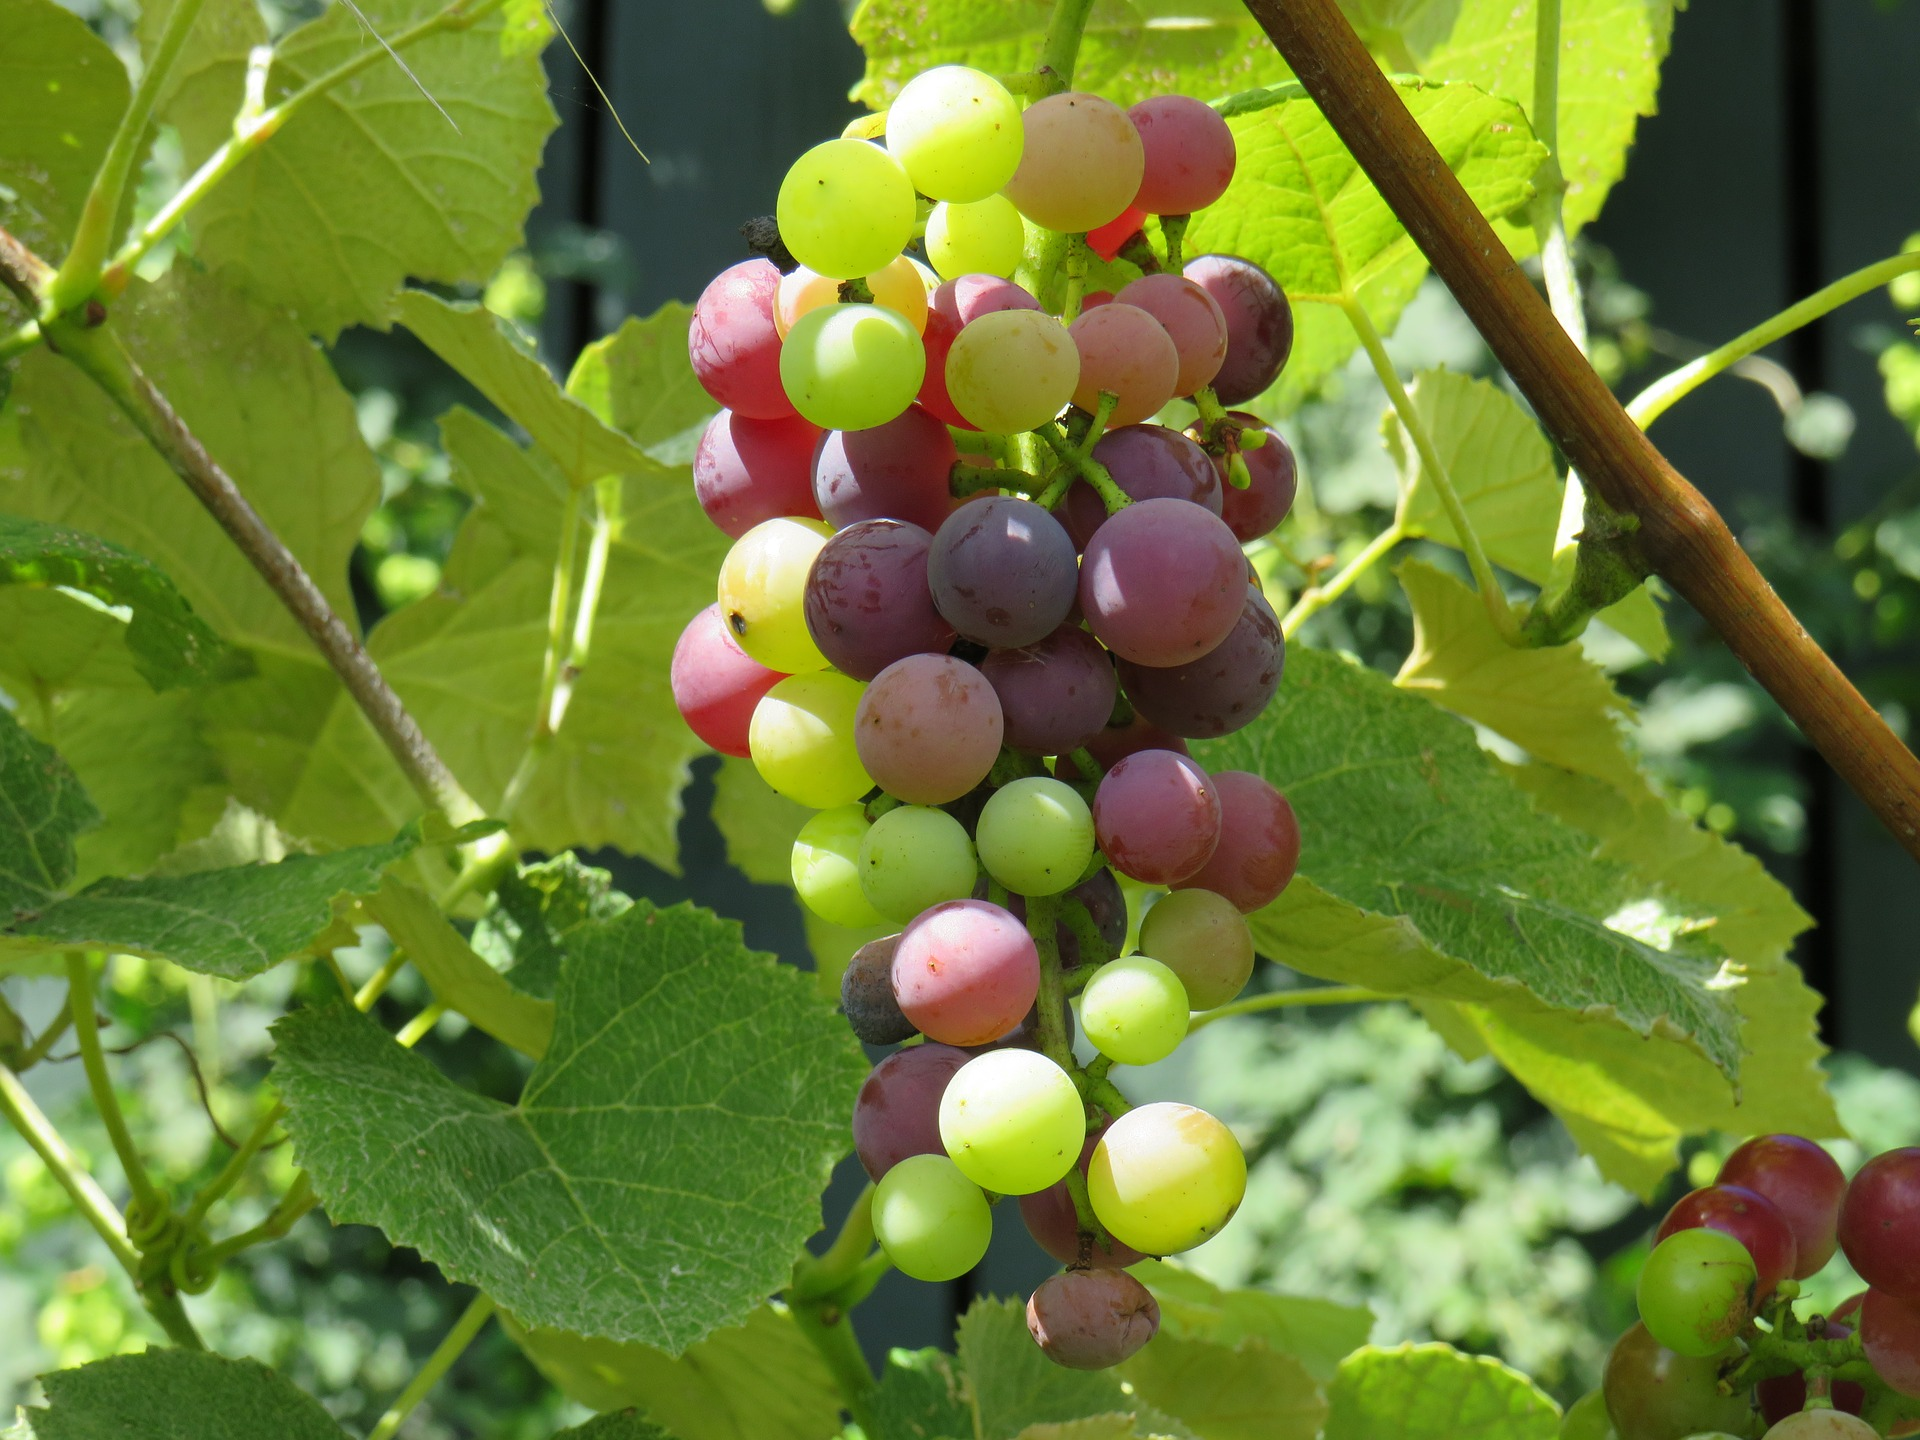 Veraison and Crop Thinning in the vineyard